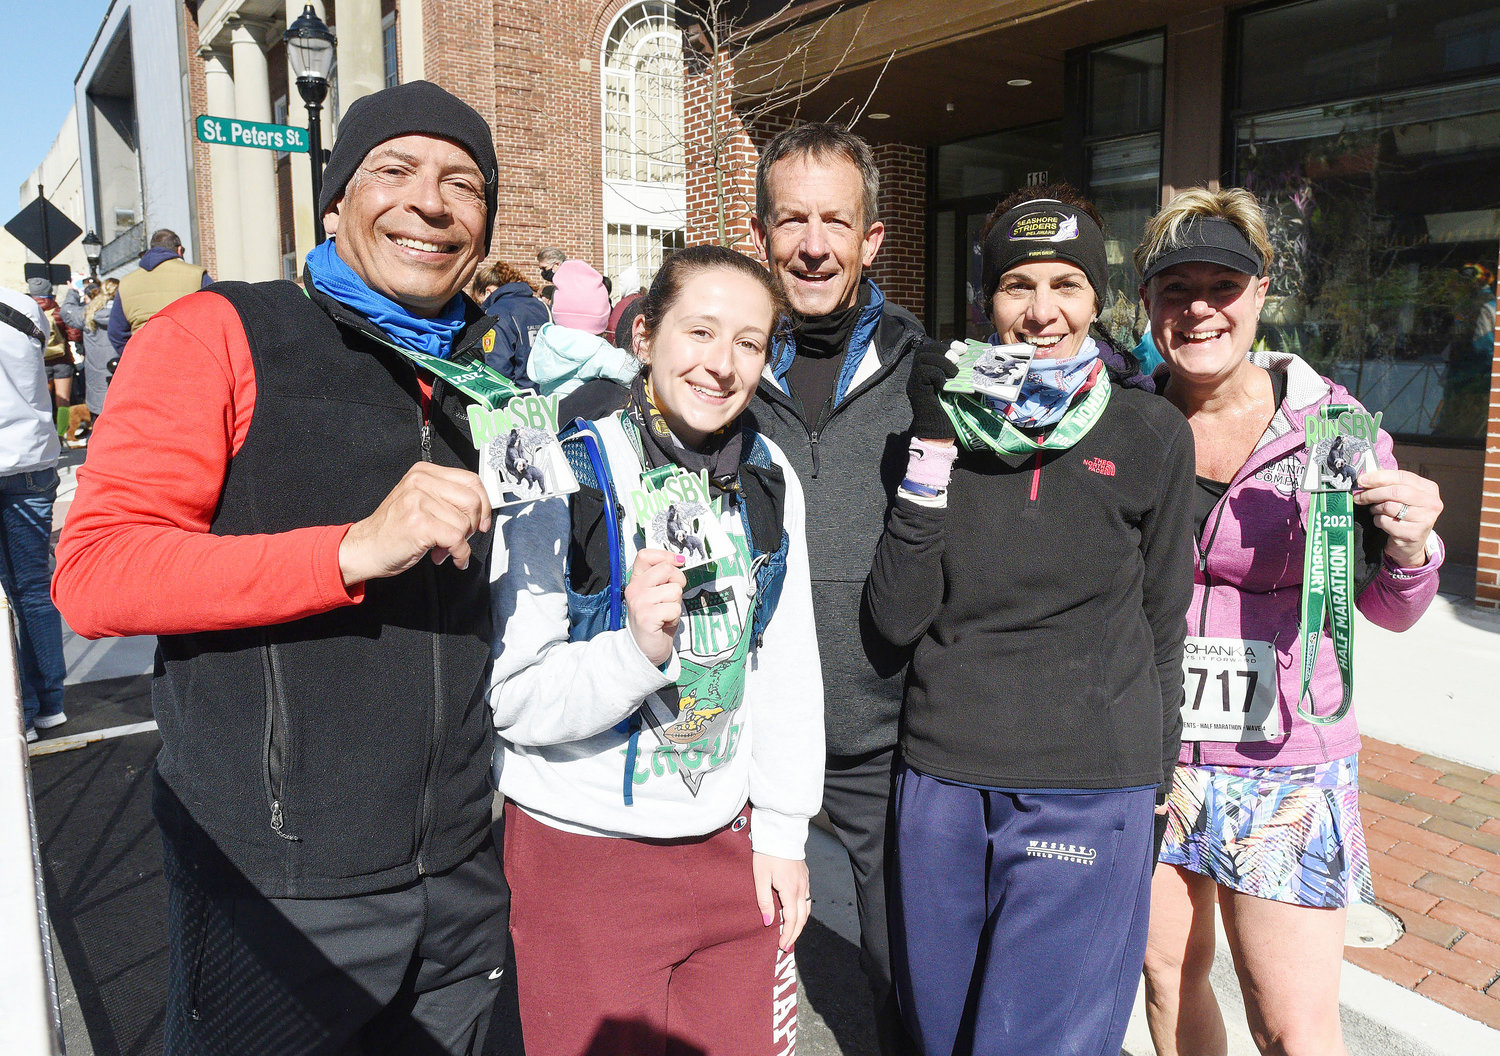 A running group from Rehoboth Beach celebrates together after competing in the 2021 Salisbury Marathon, Half-Marathon and #RunSBY 5k.